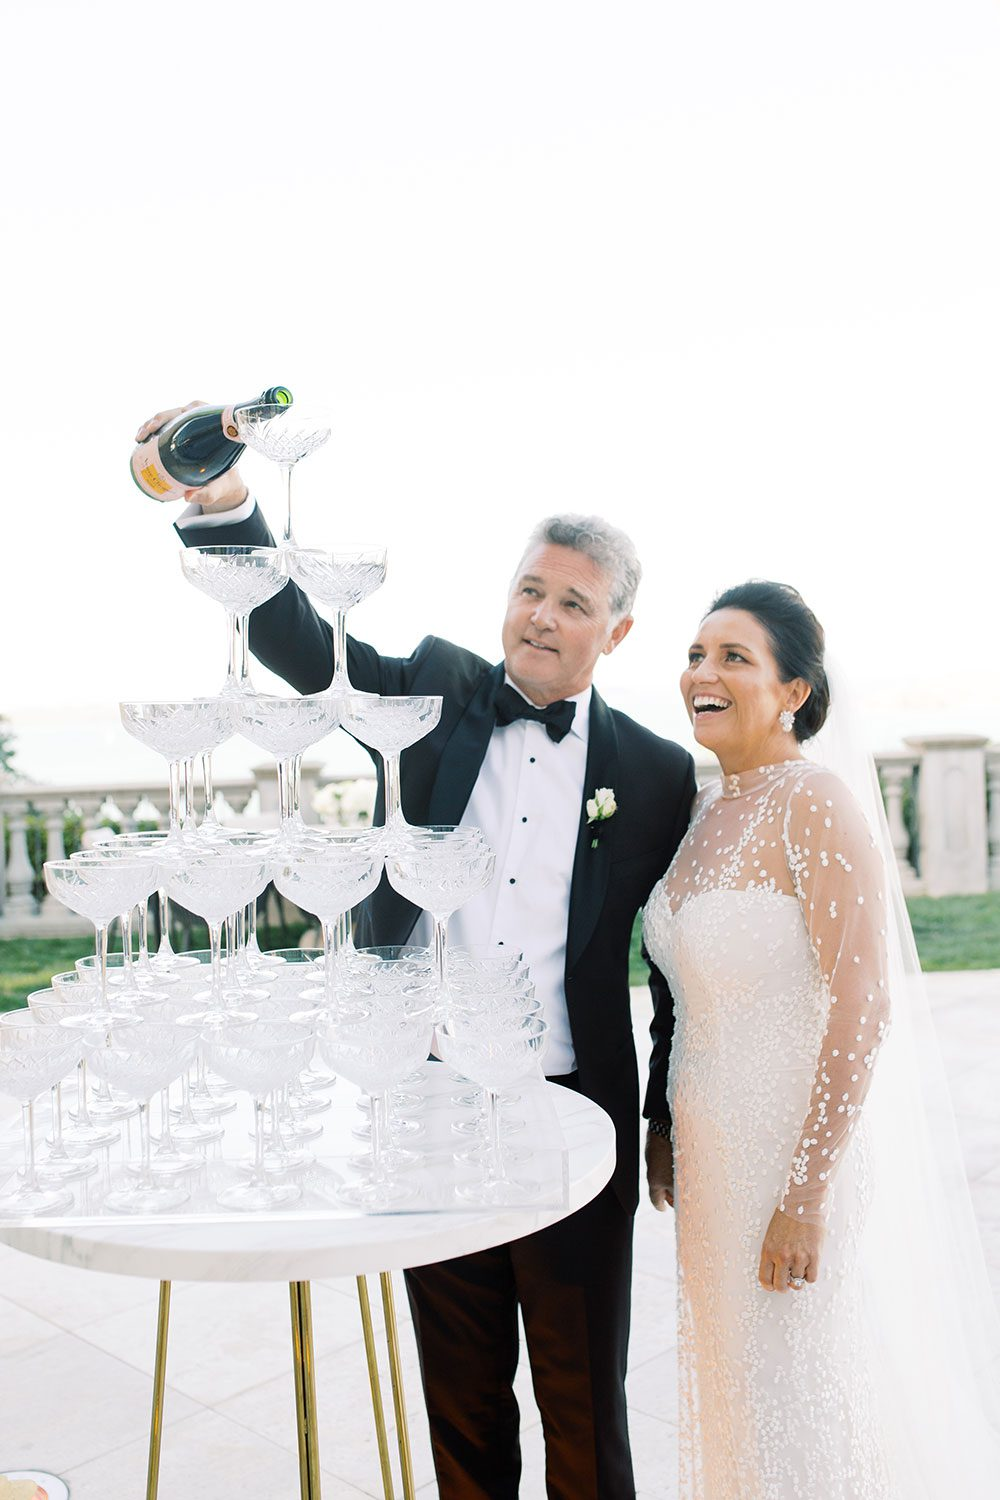 Bride wearing bespoke gown by Auckland wedding dress designer Vinka Design, with a high neckline and delicate spotted embroidery - pouring champagne